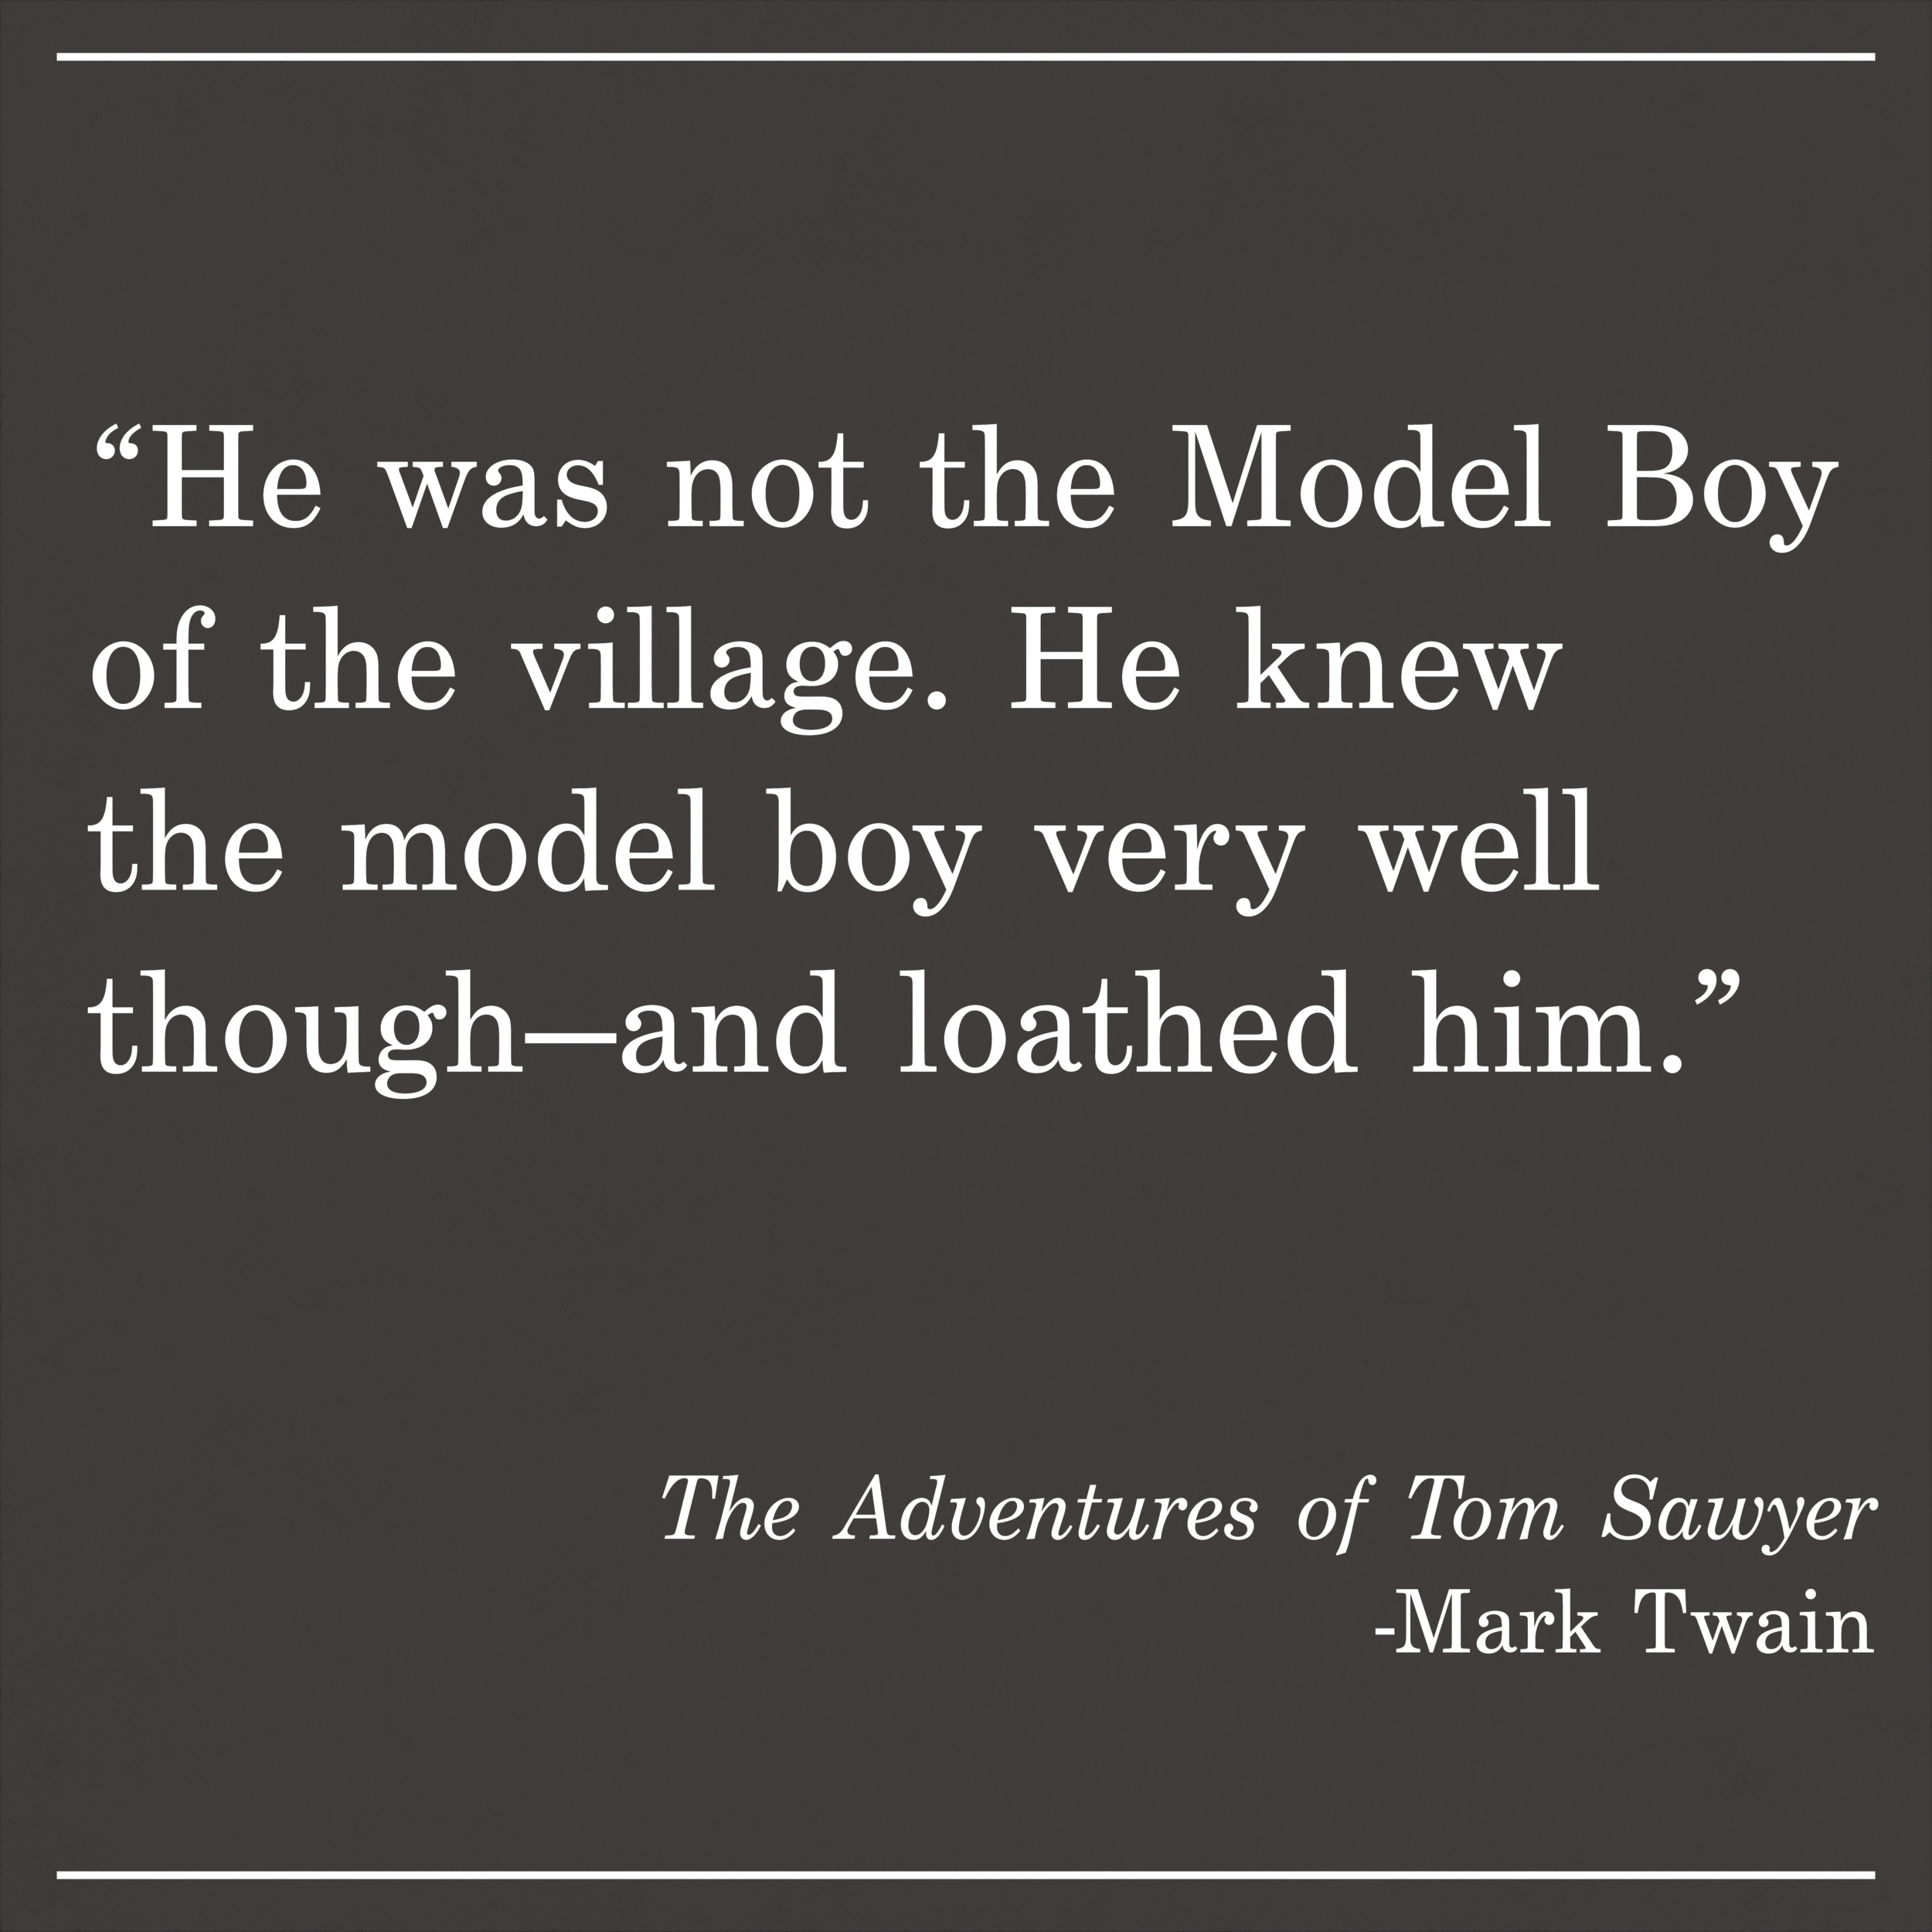 Daily Quote The Adventures of Tom Sawyer by Mark Twain